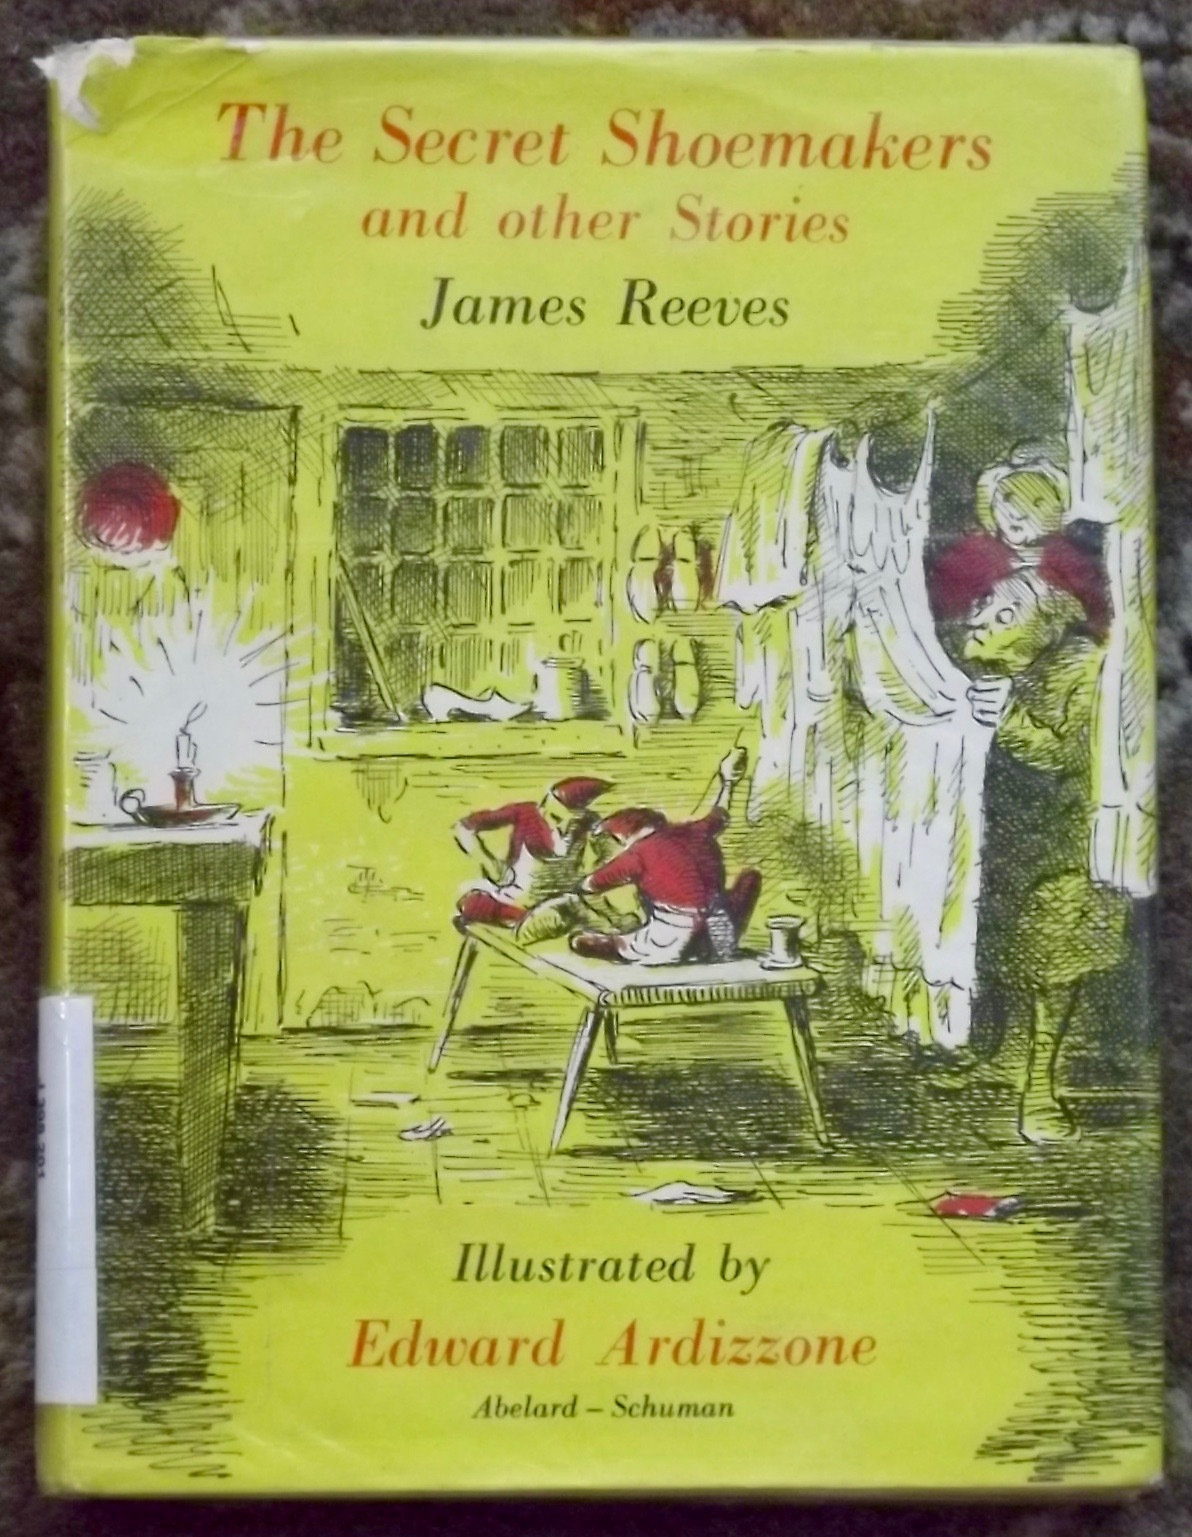 Primary image for The Secret Shoemakers and other Stories by James Reeves and Edward Ardizzone